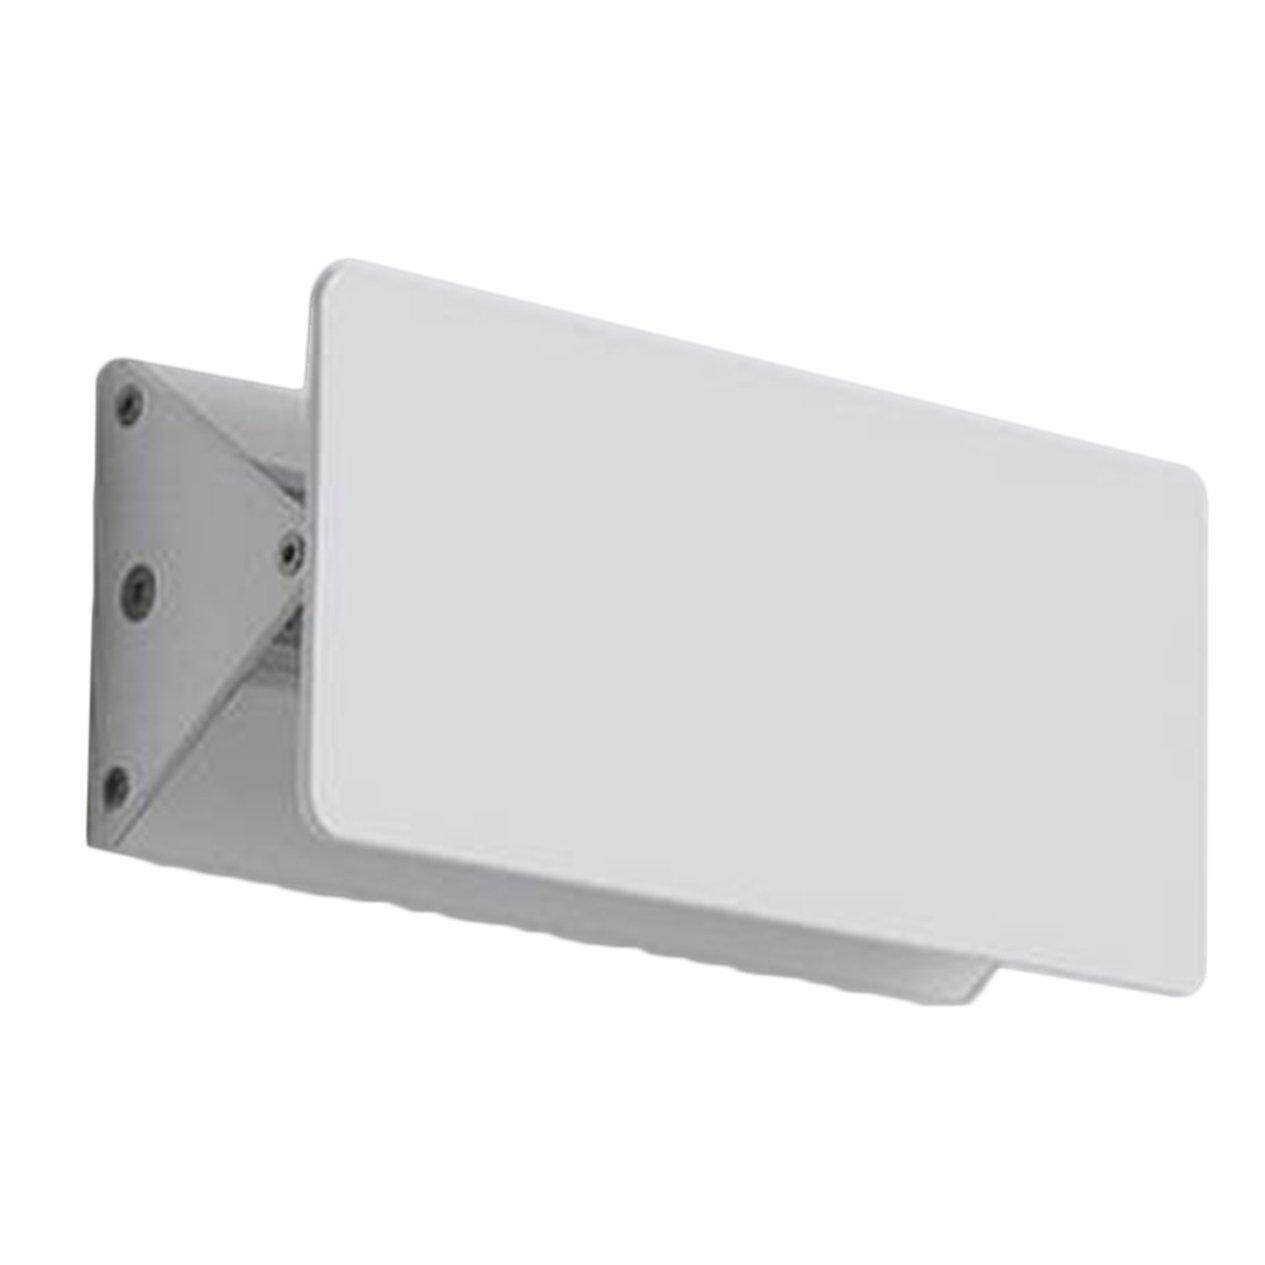 Hot Sellers LED bedside wall lamp Dimmable wall lamp Modern minimalist wall lamp